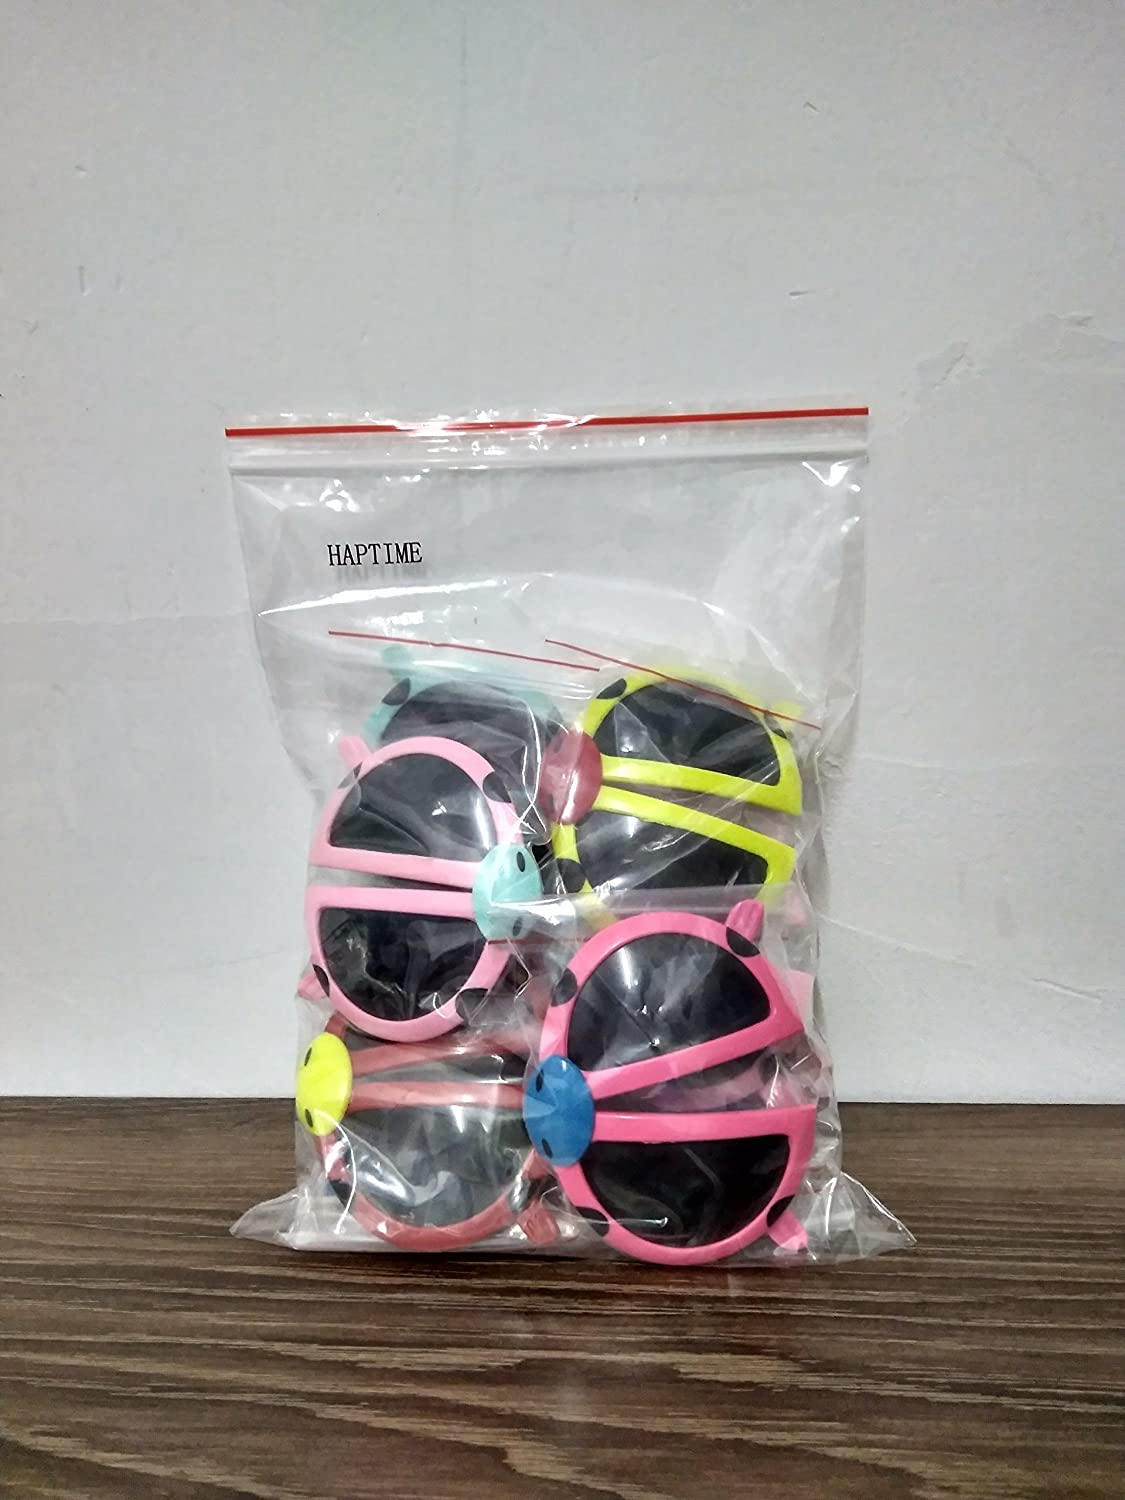 Pack of 8 Colorful Sunglasses Toy Assorted Plastic Foldable Shade Glasses with Dark Lens for Children Boys Kids Party Favors Bag Fillers HAPTIME